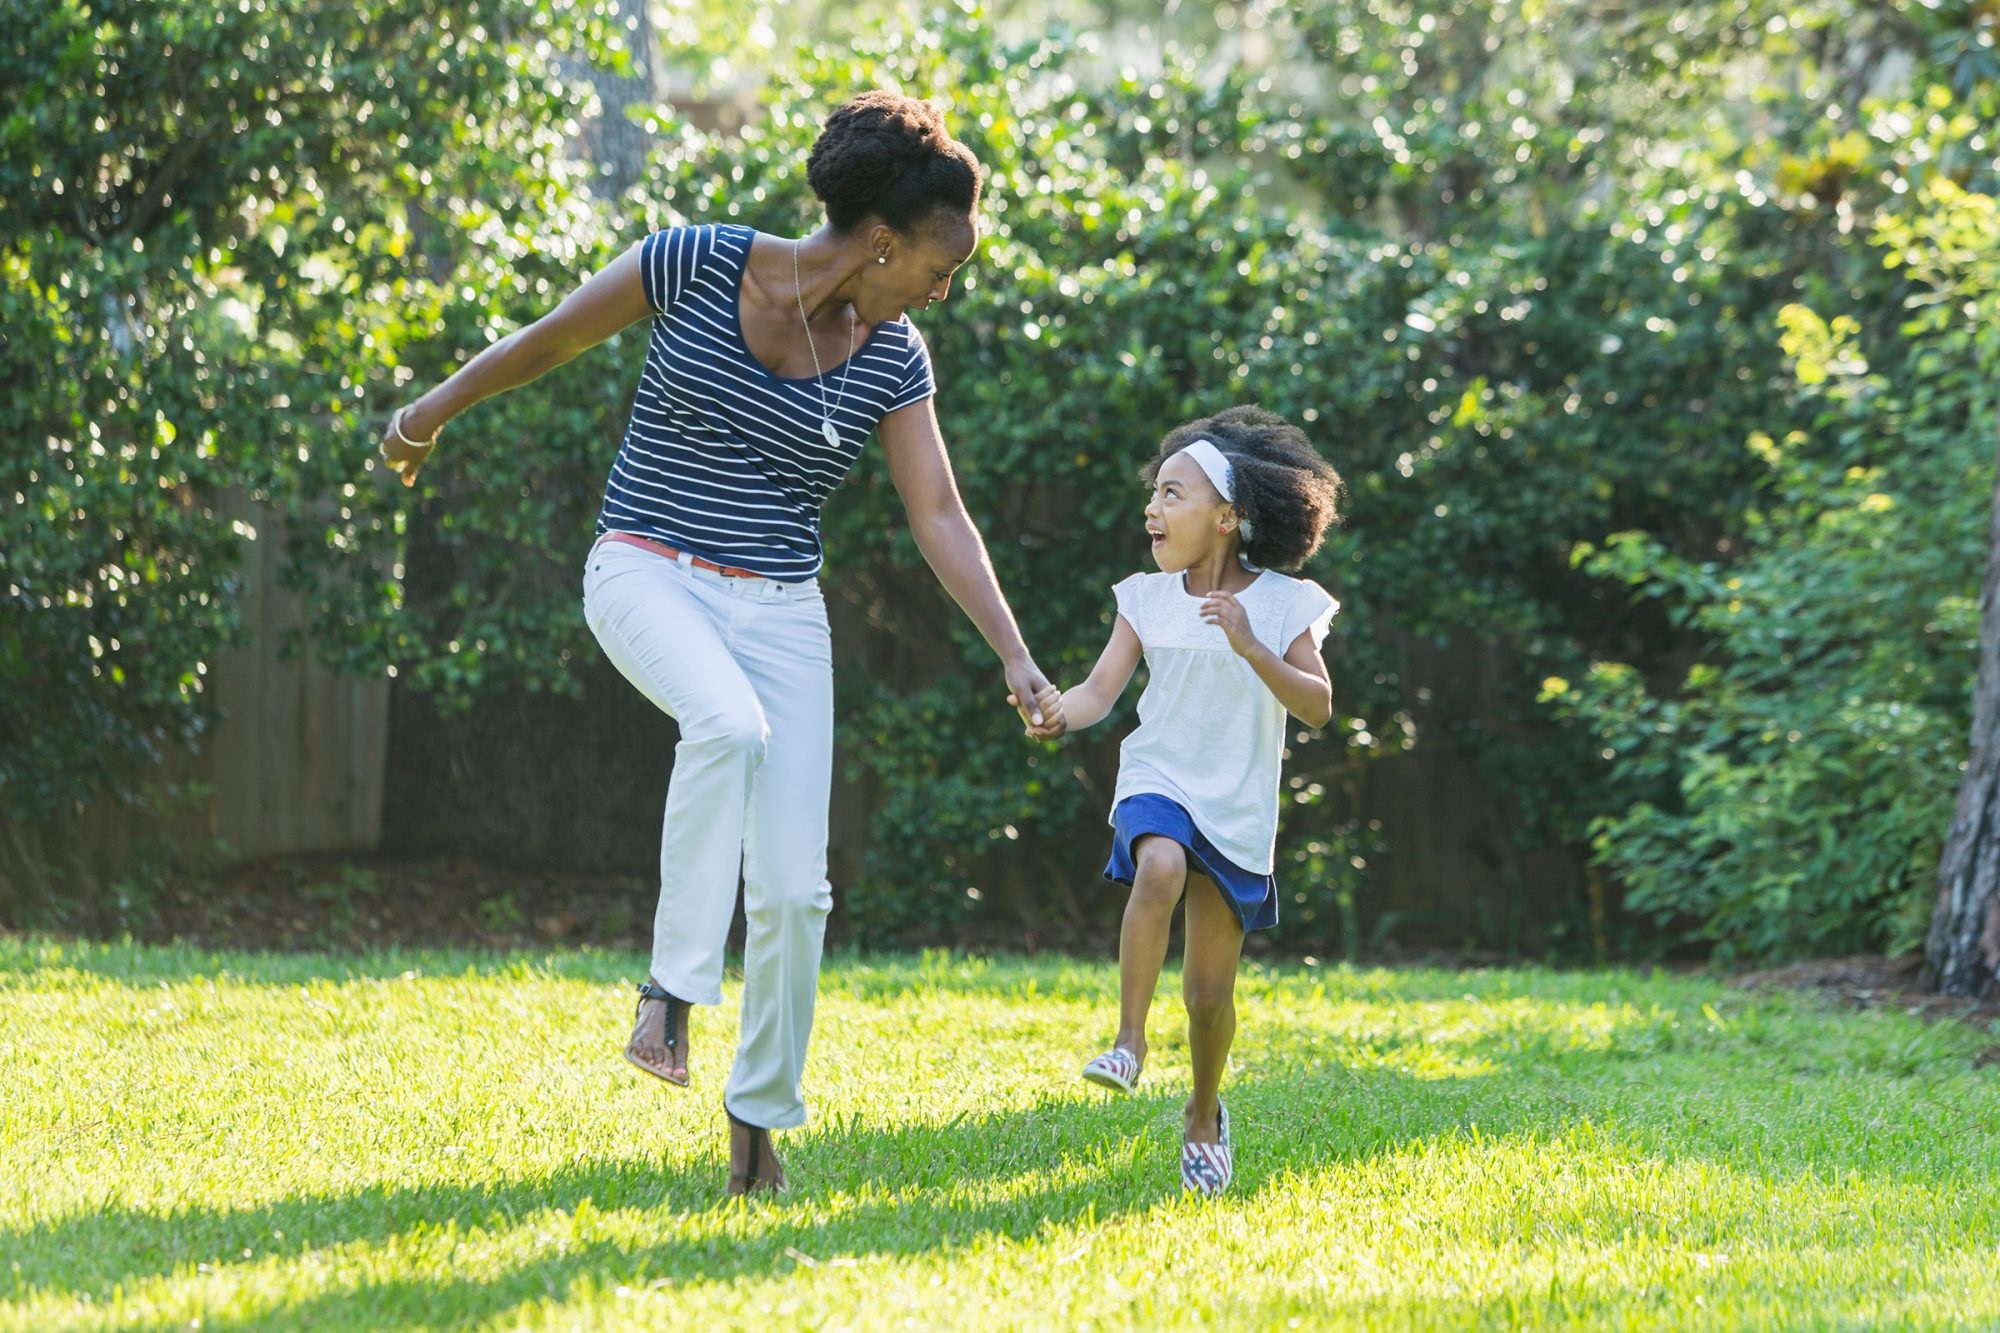 mother and daughter looking at each other while holding hands running through grass outside